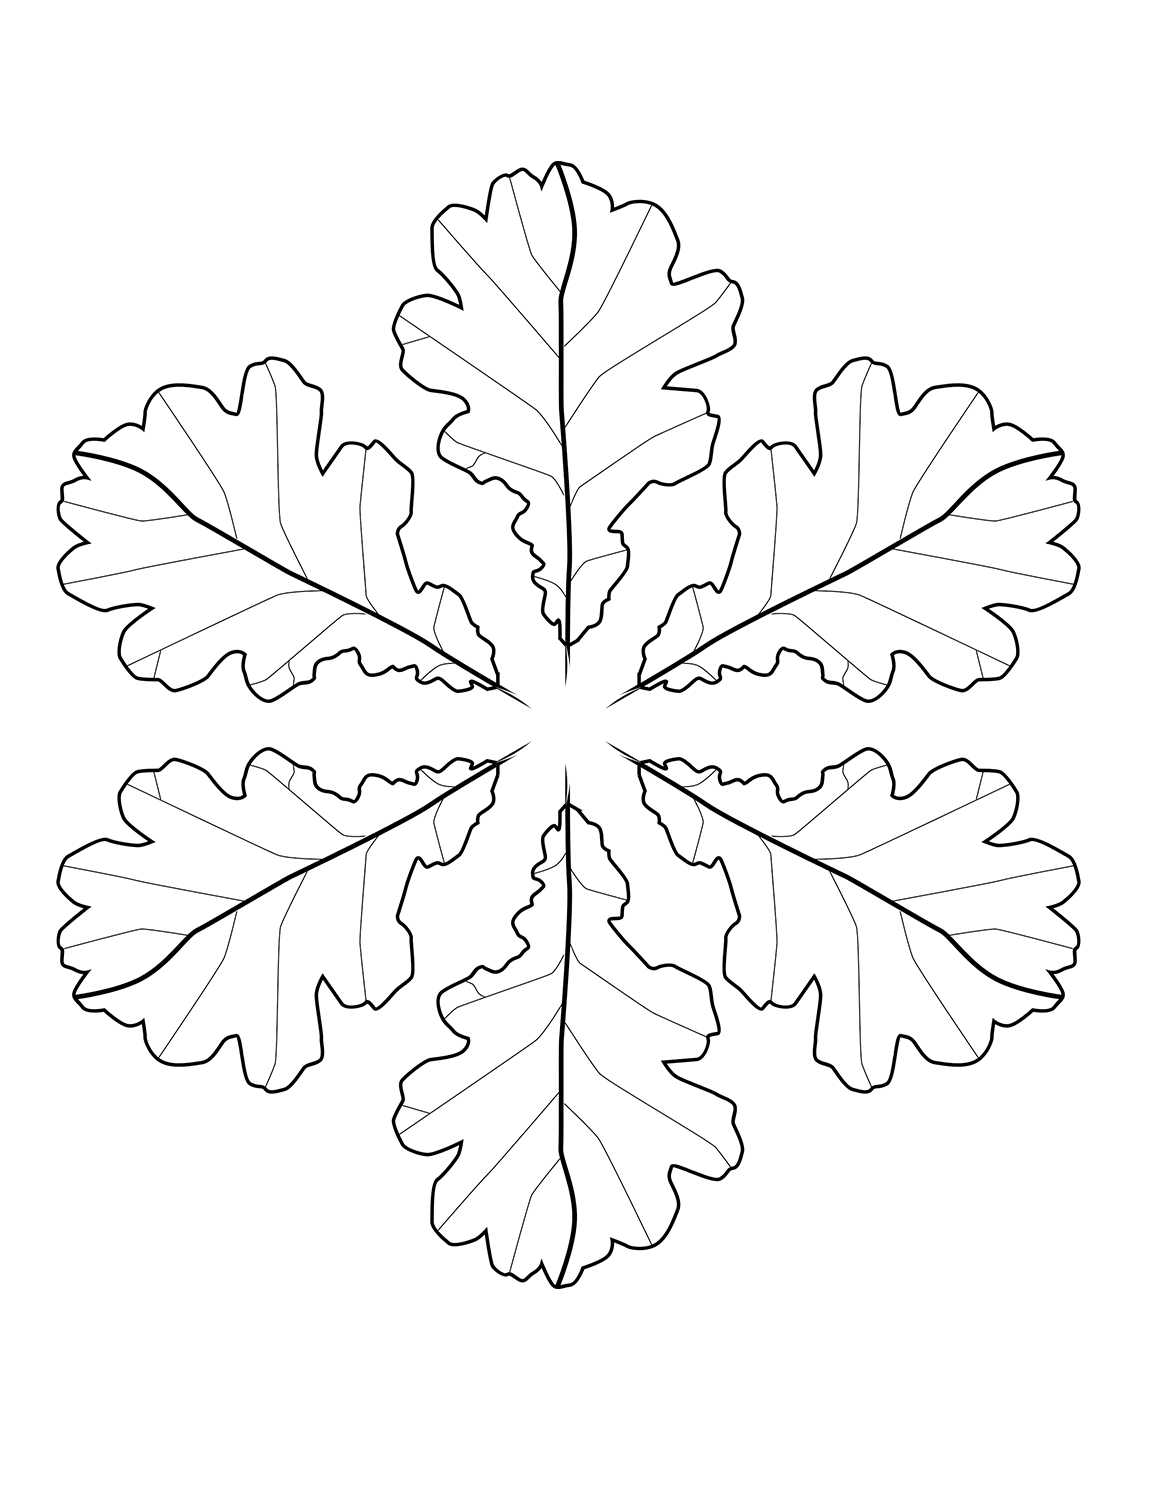 5 Fall Coloring Sheets: Autumn Season Coloring Pages - All ESL